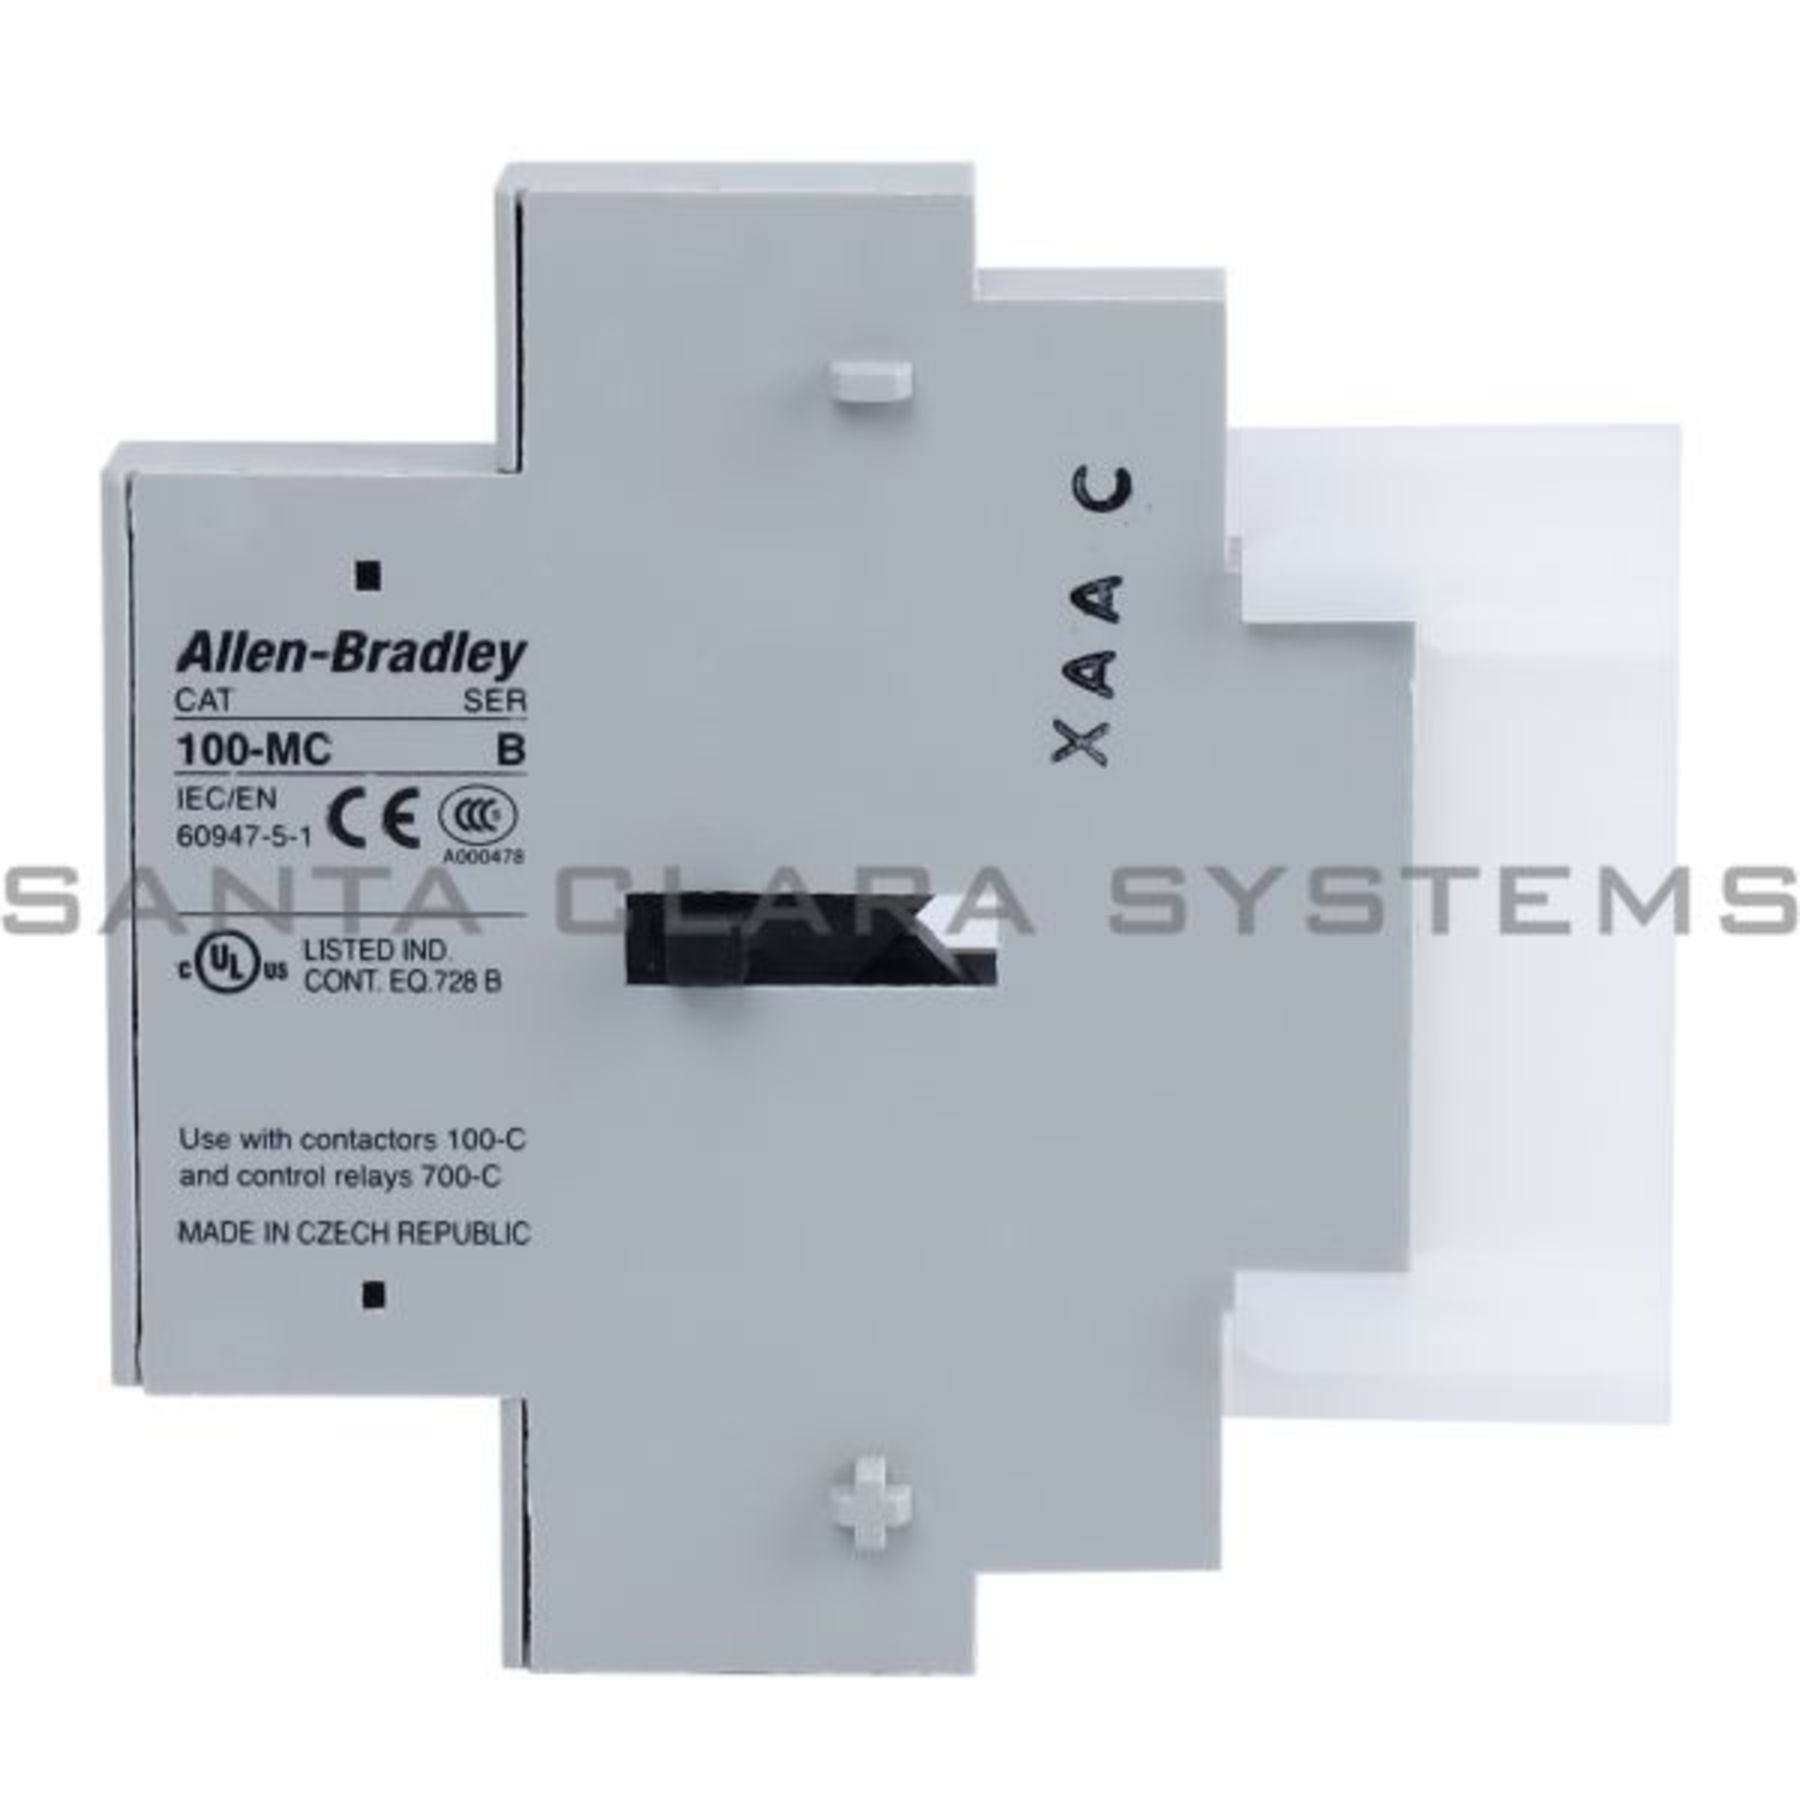 100-MCA00 Allen Bradley In stock and ready to ship - Santa Clara Systems